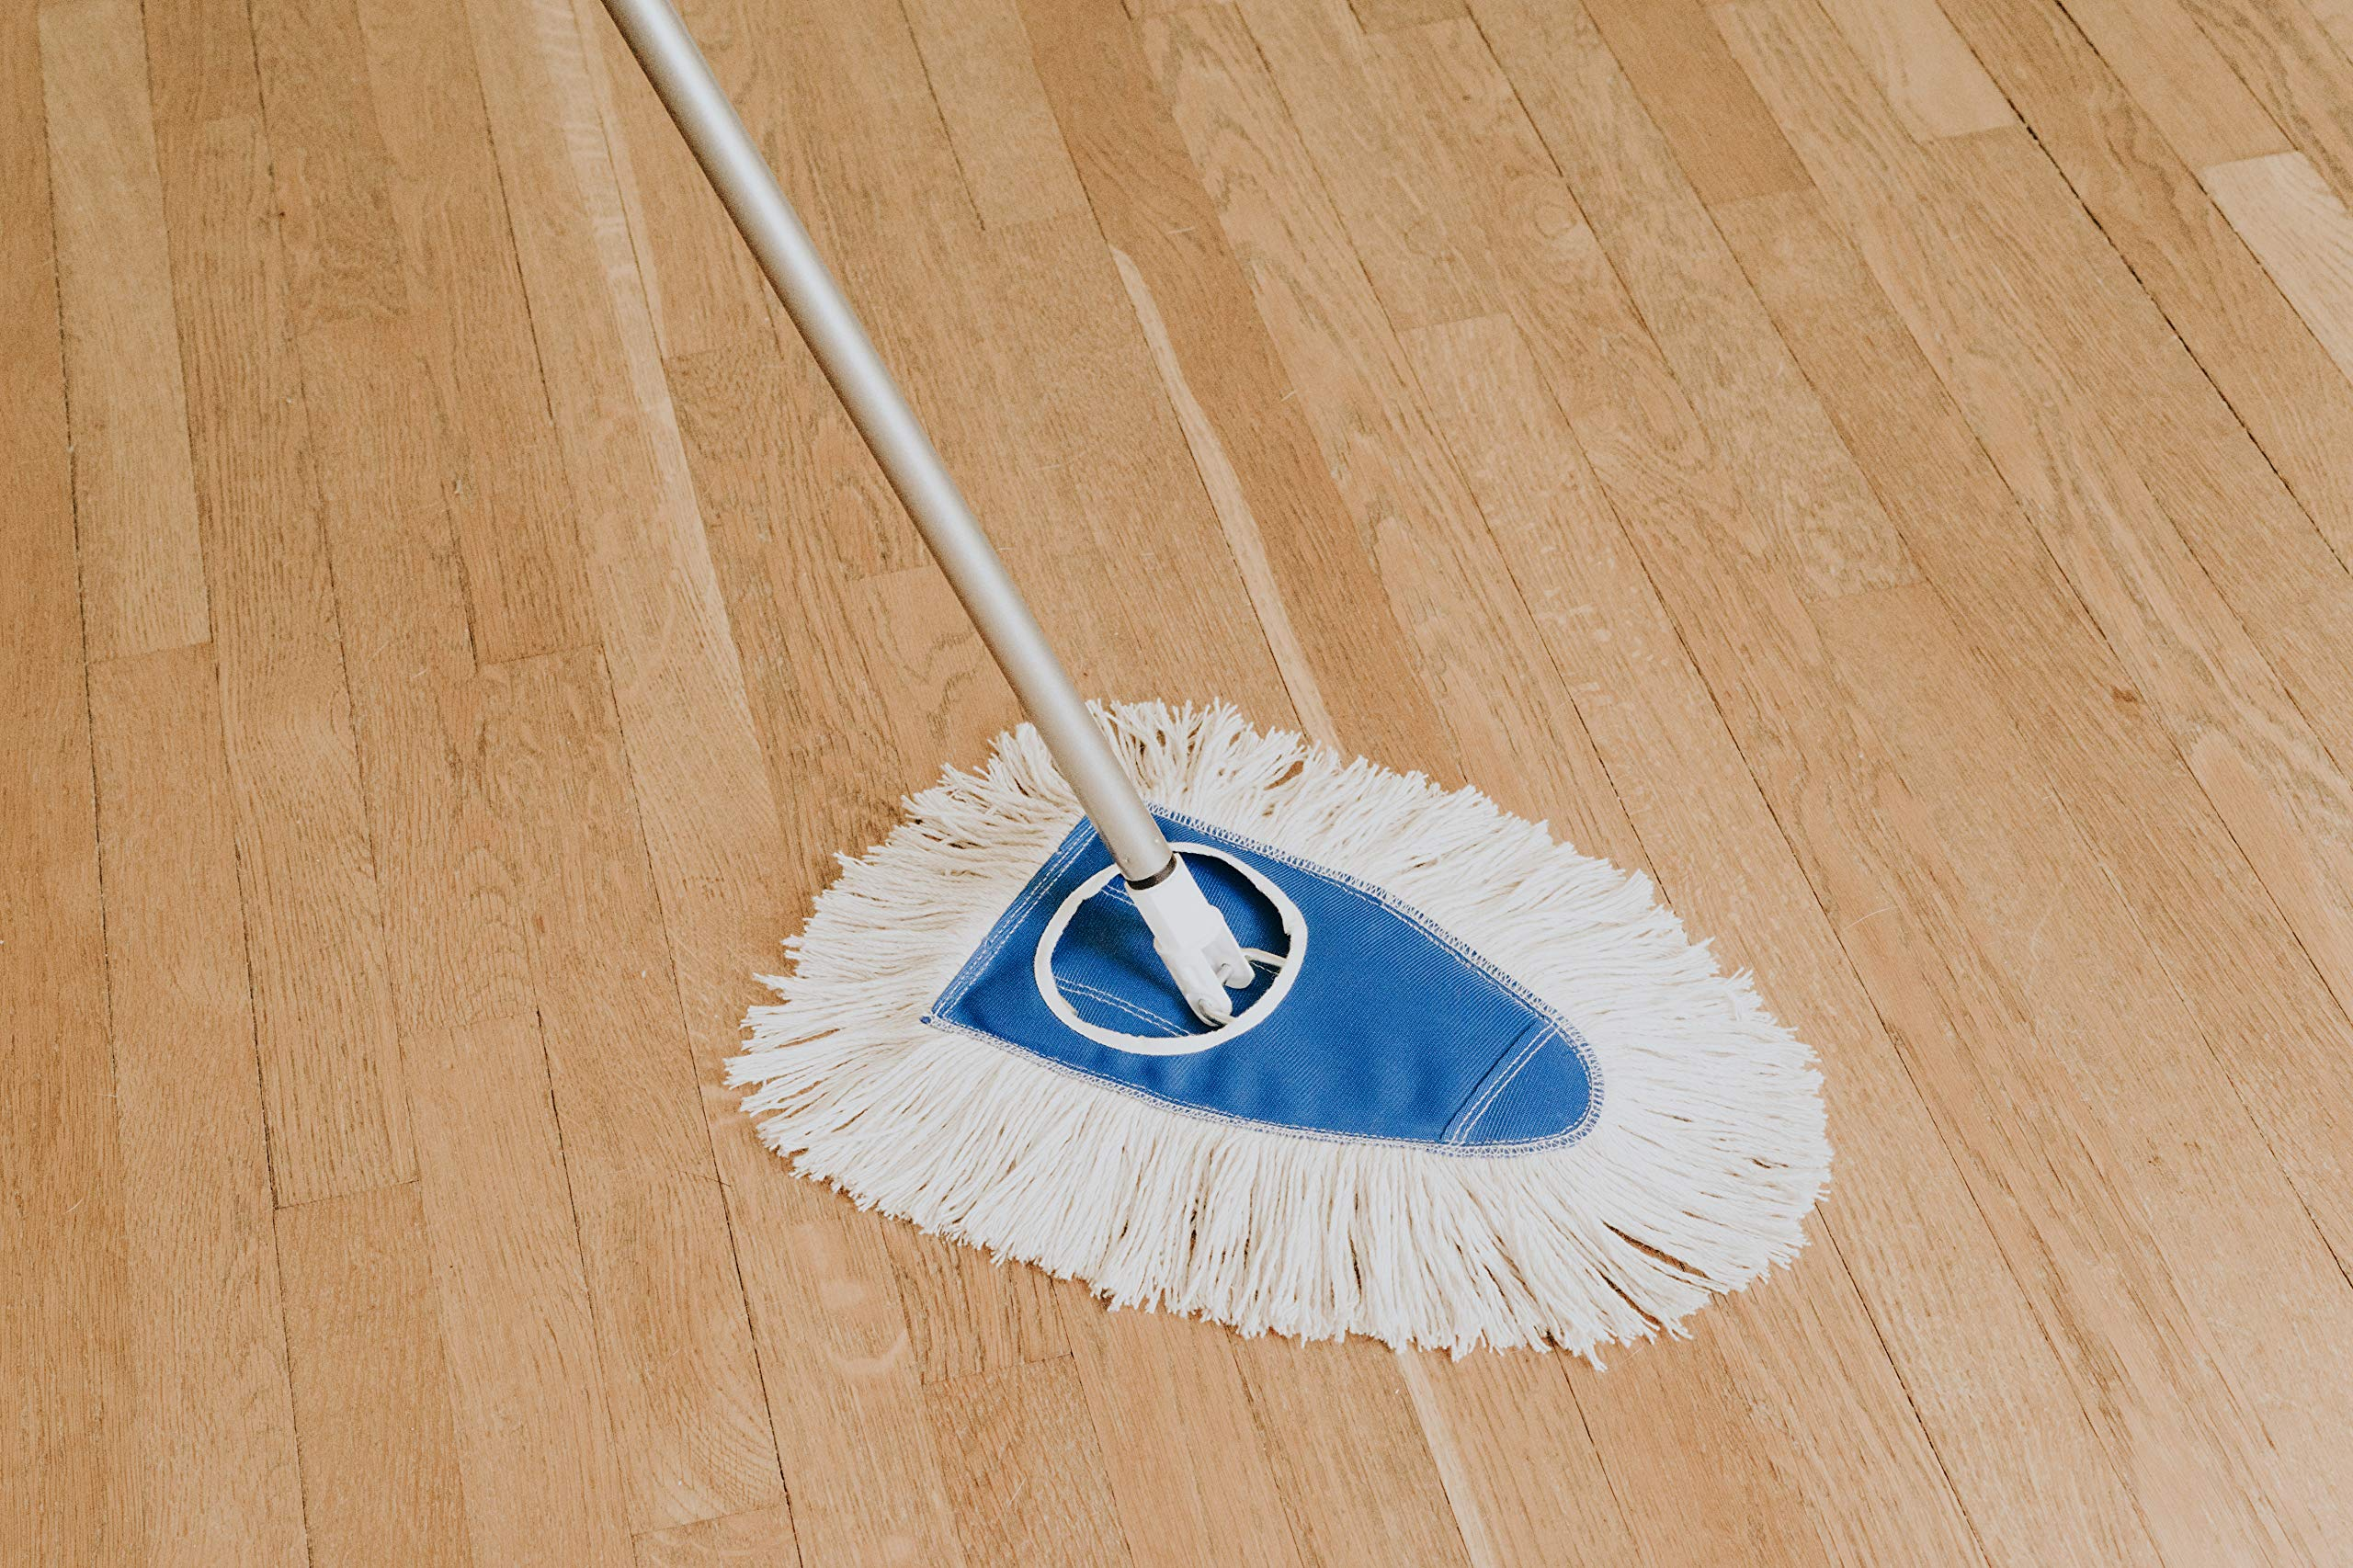 Fuller Brush Dry Mop Head with Frame & Adjustable Telescopic Handle (Dry Mop Complete) by Fuller Brush (Image #9)